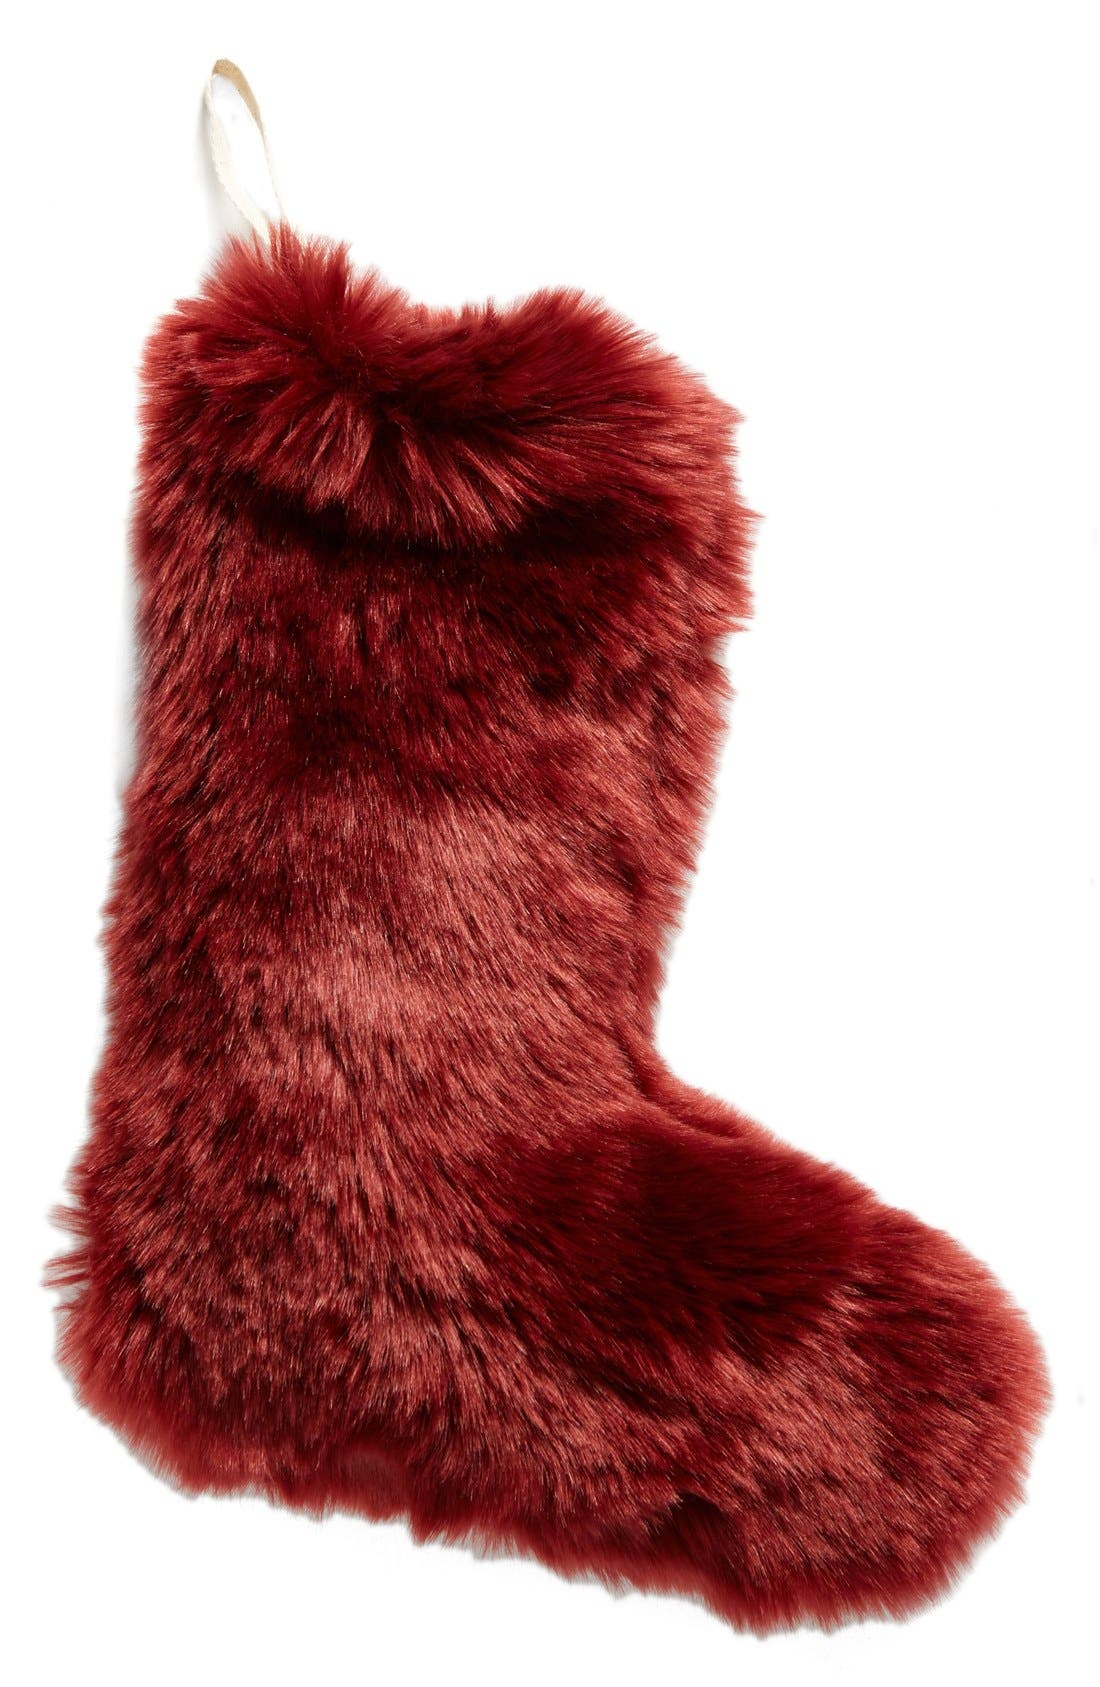 'Cuddle Up' Faux Fur Christmas Stocking,                             Main thumbnail 2, color,